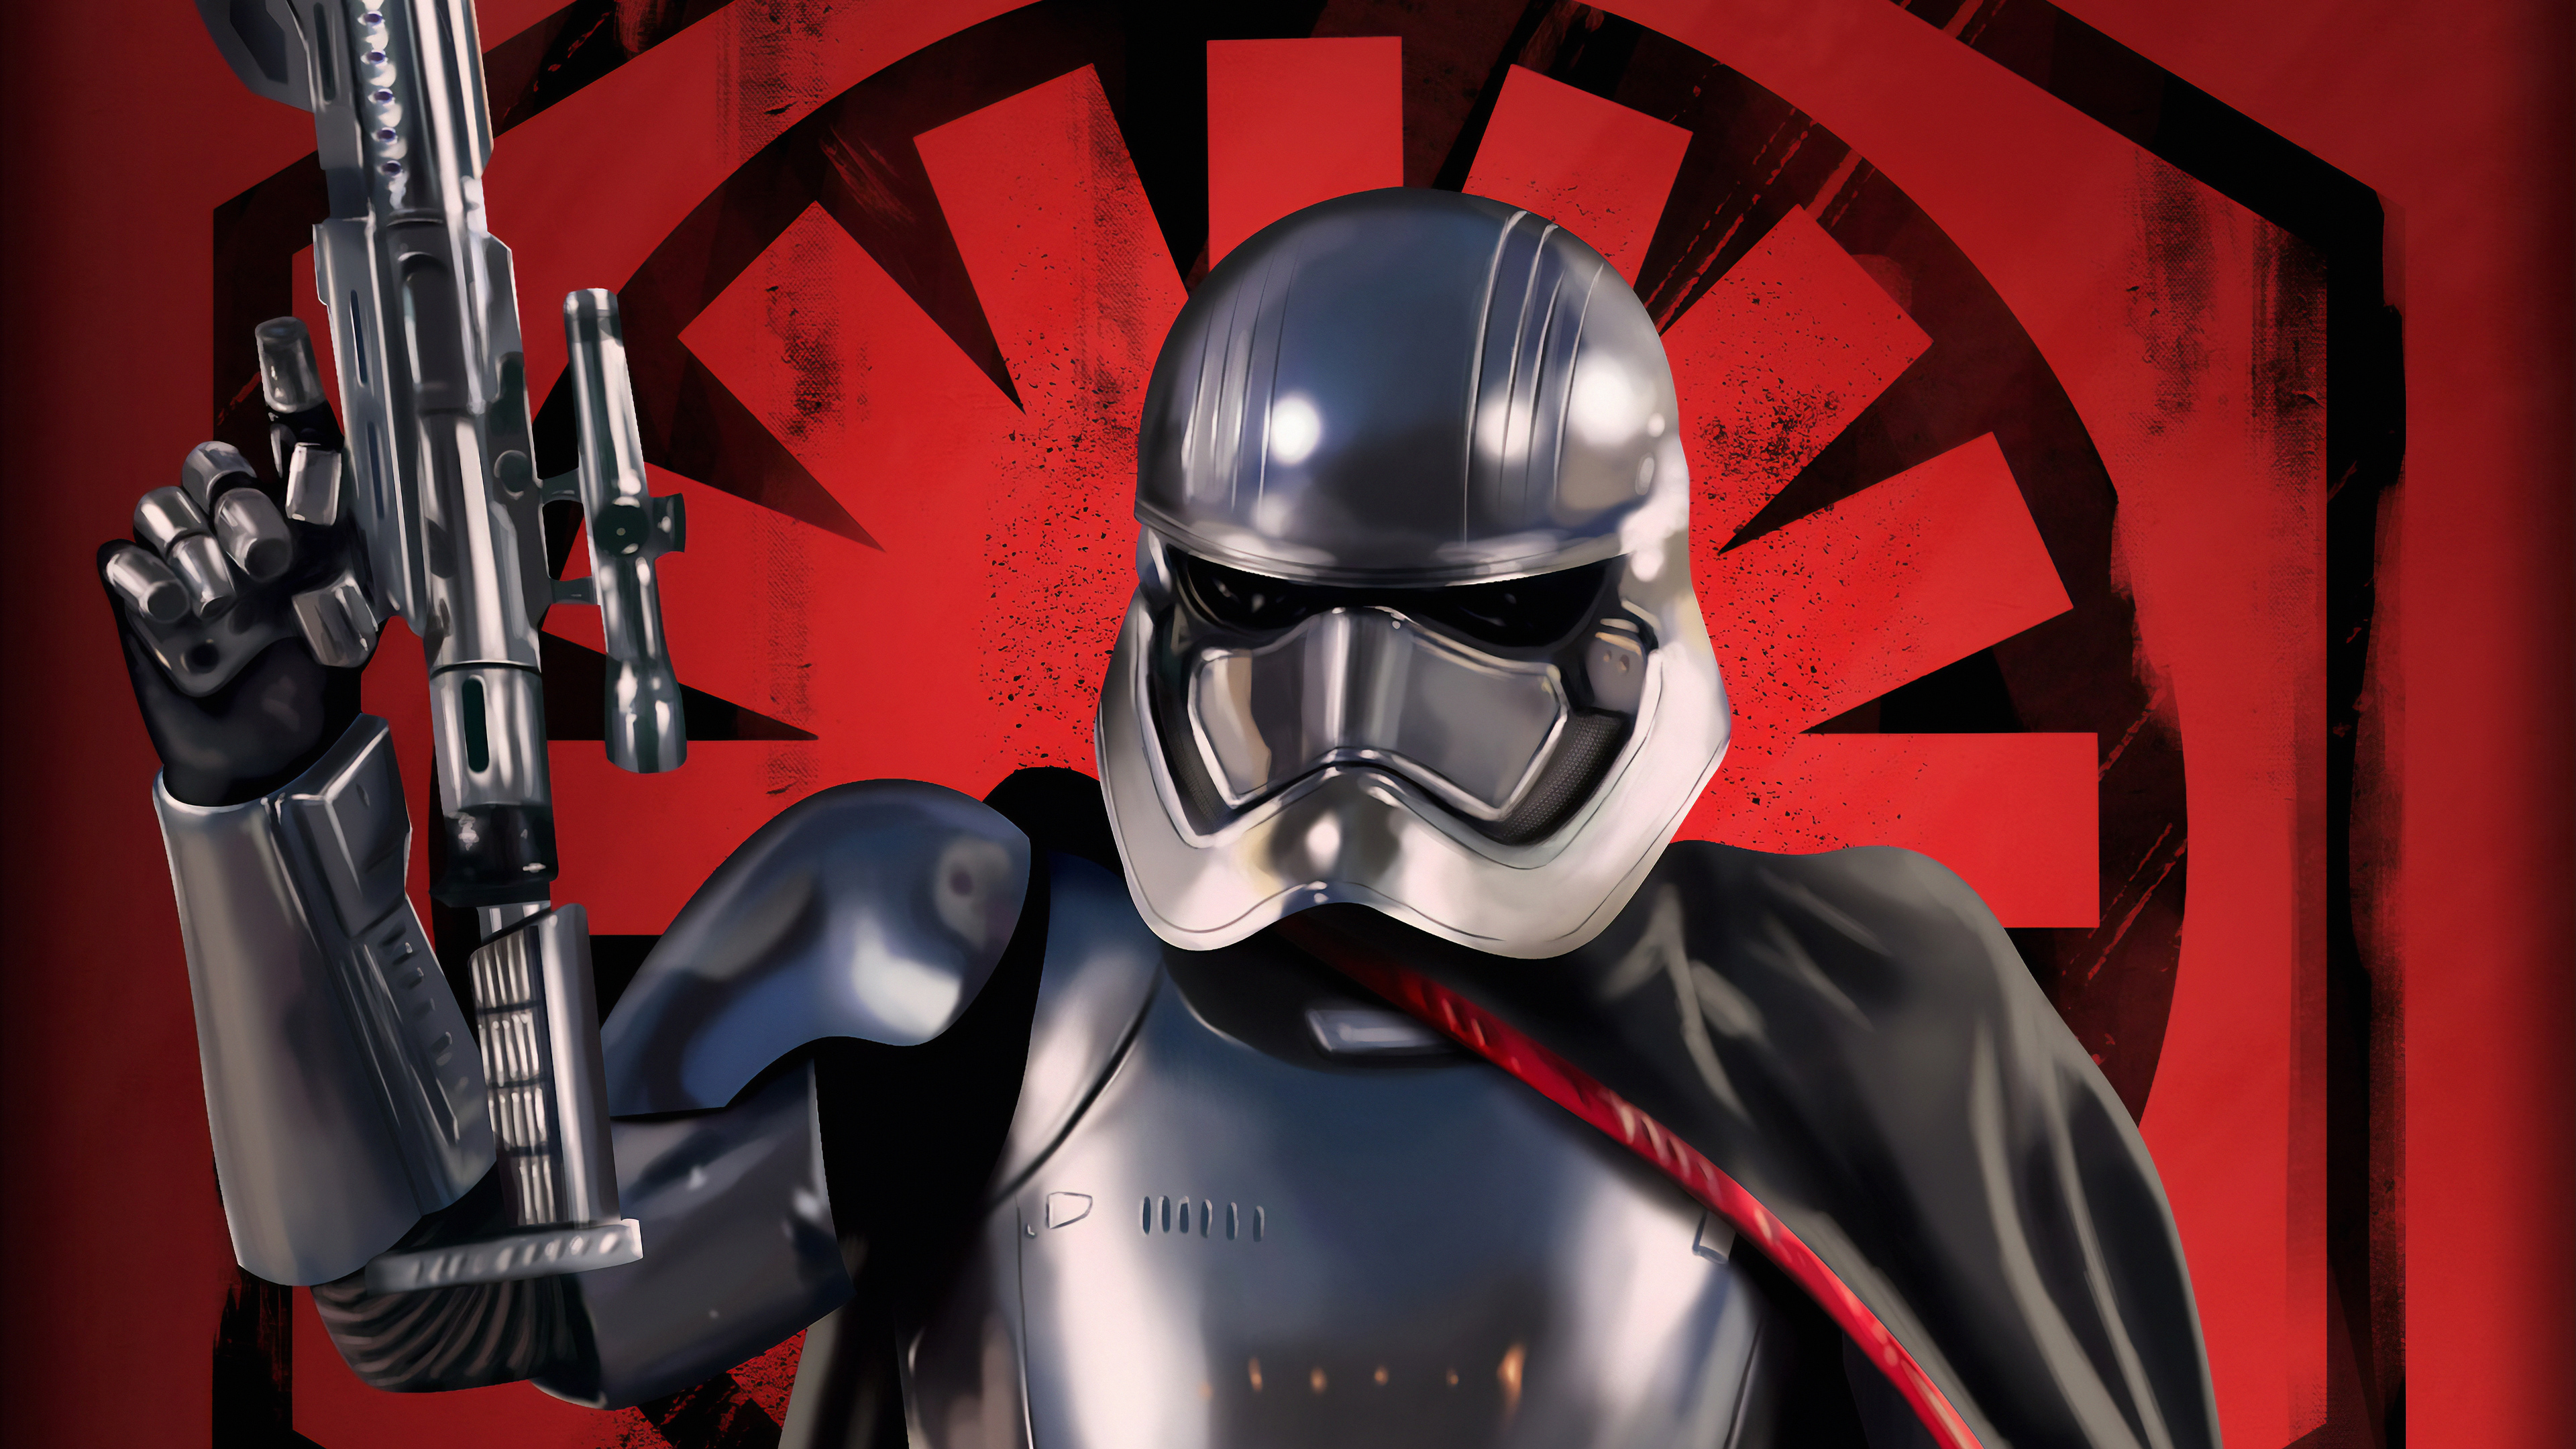 captain phasma art 1570394216 - Captain Phasma Art - superheroes wallpapers, star wars wallpapers, hd-wallpapers, captain phasma wallpapers, artwork wallpapers, 4k-wallpapers